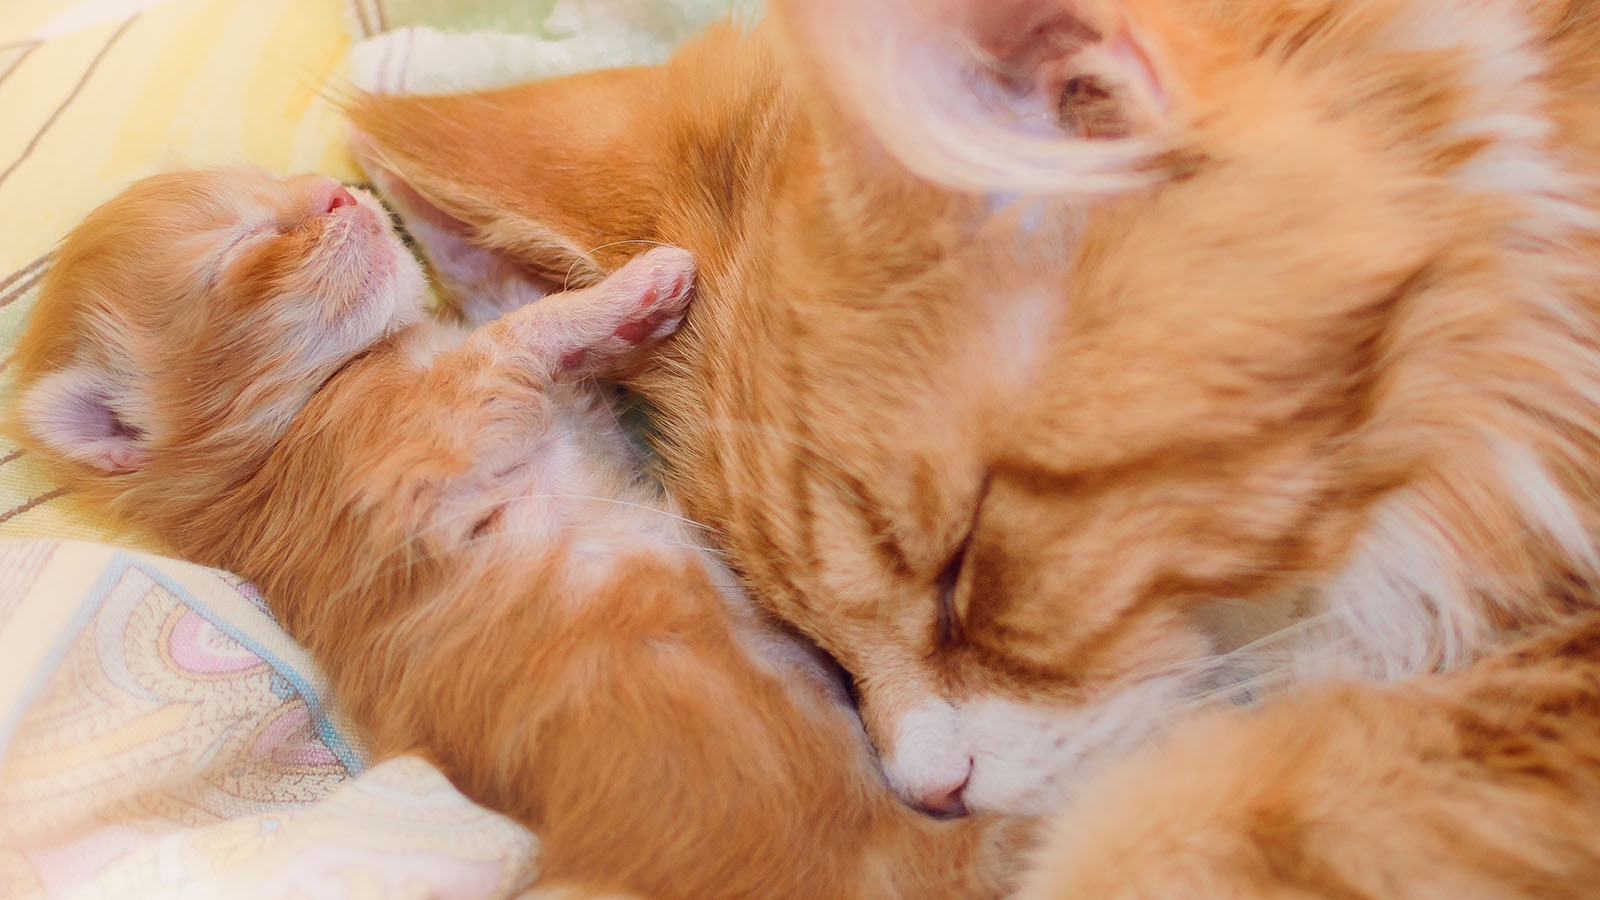 The mama cat takes good care of her kitten.